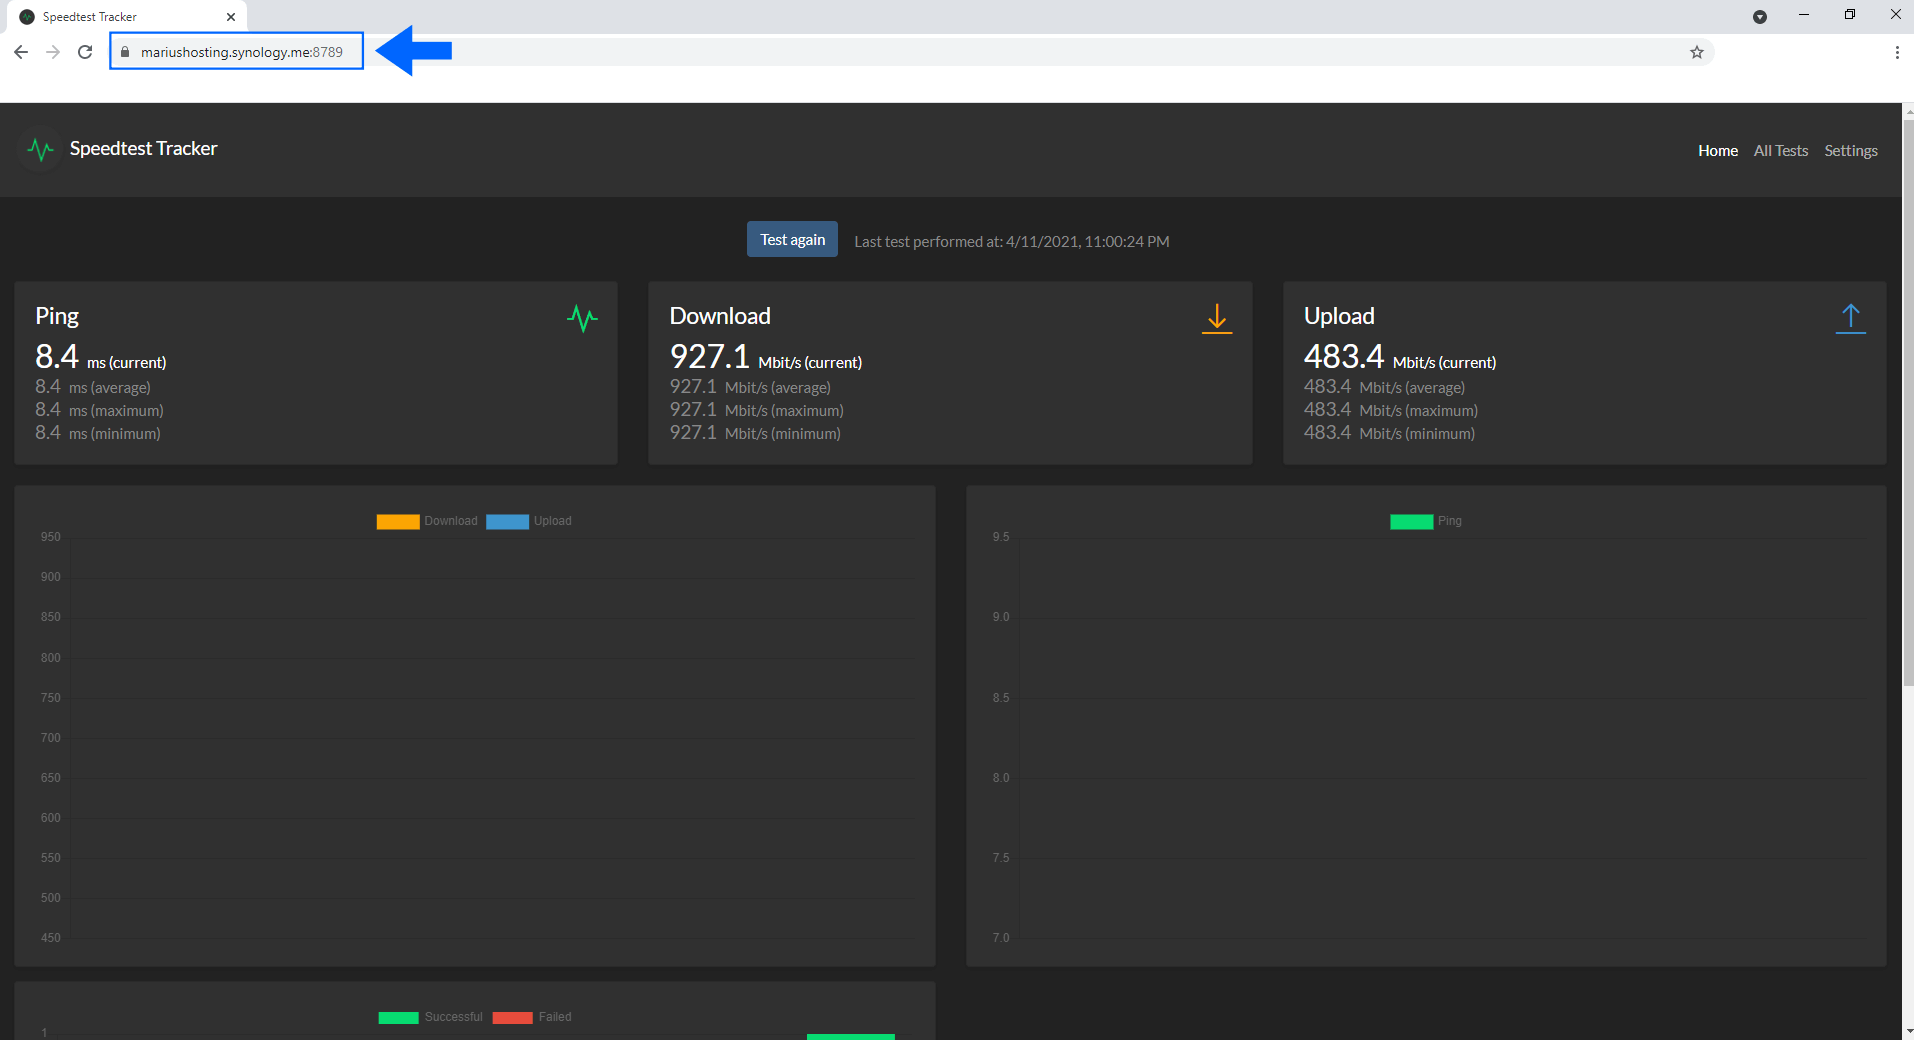 5 Synology Docker allow Speedtest Tracker to work over an https connection